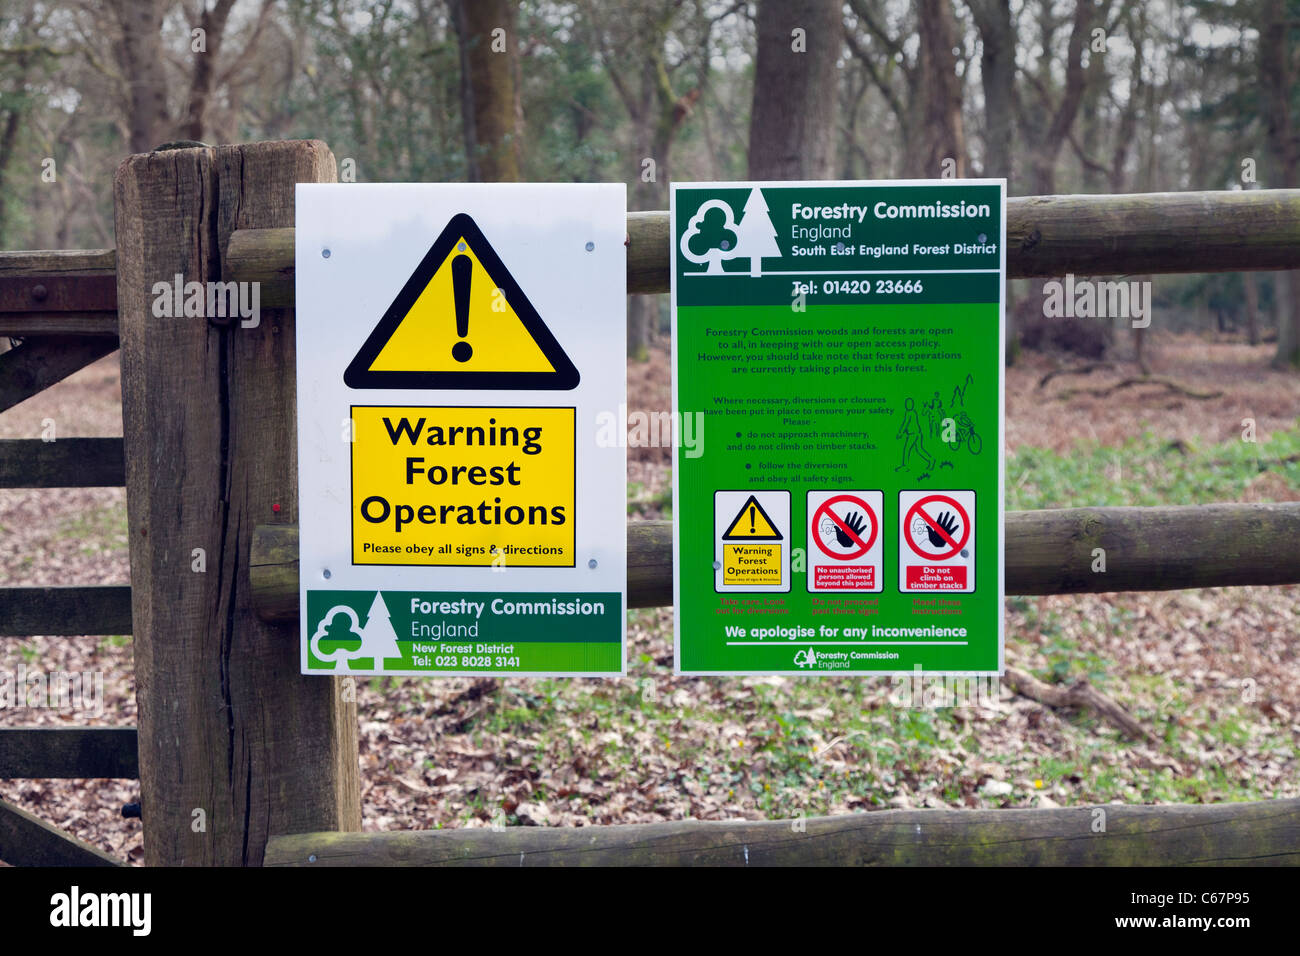 Forestry Commission Forest Operations Warning Sign fence trees No access Tree Felling polite notice information - Stock Image